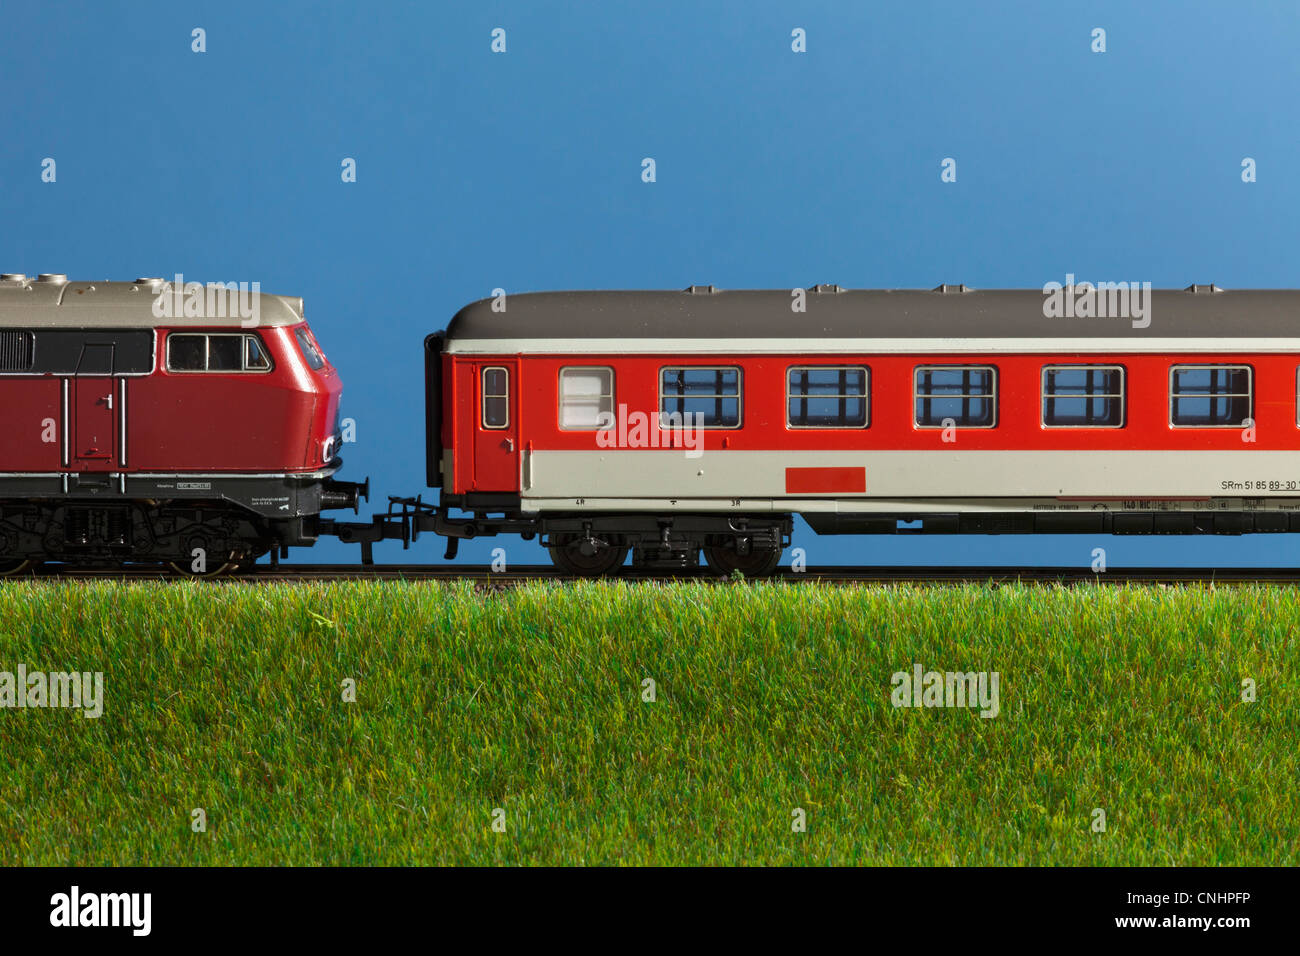 A miniature toy passenger train Stock Photo